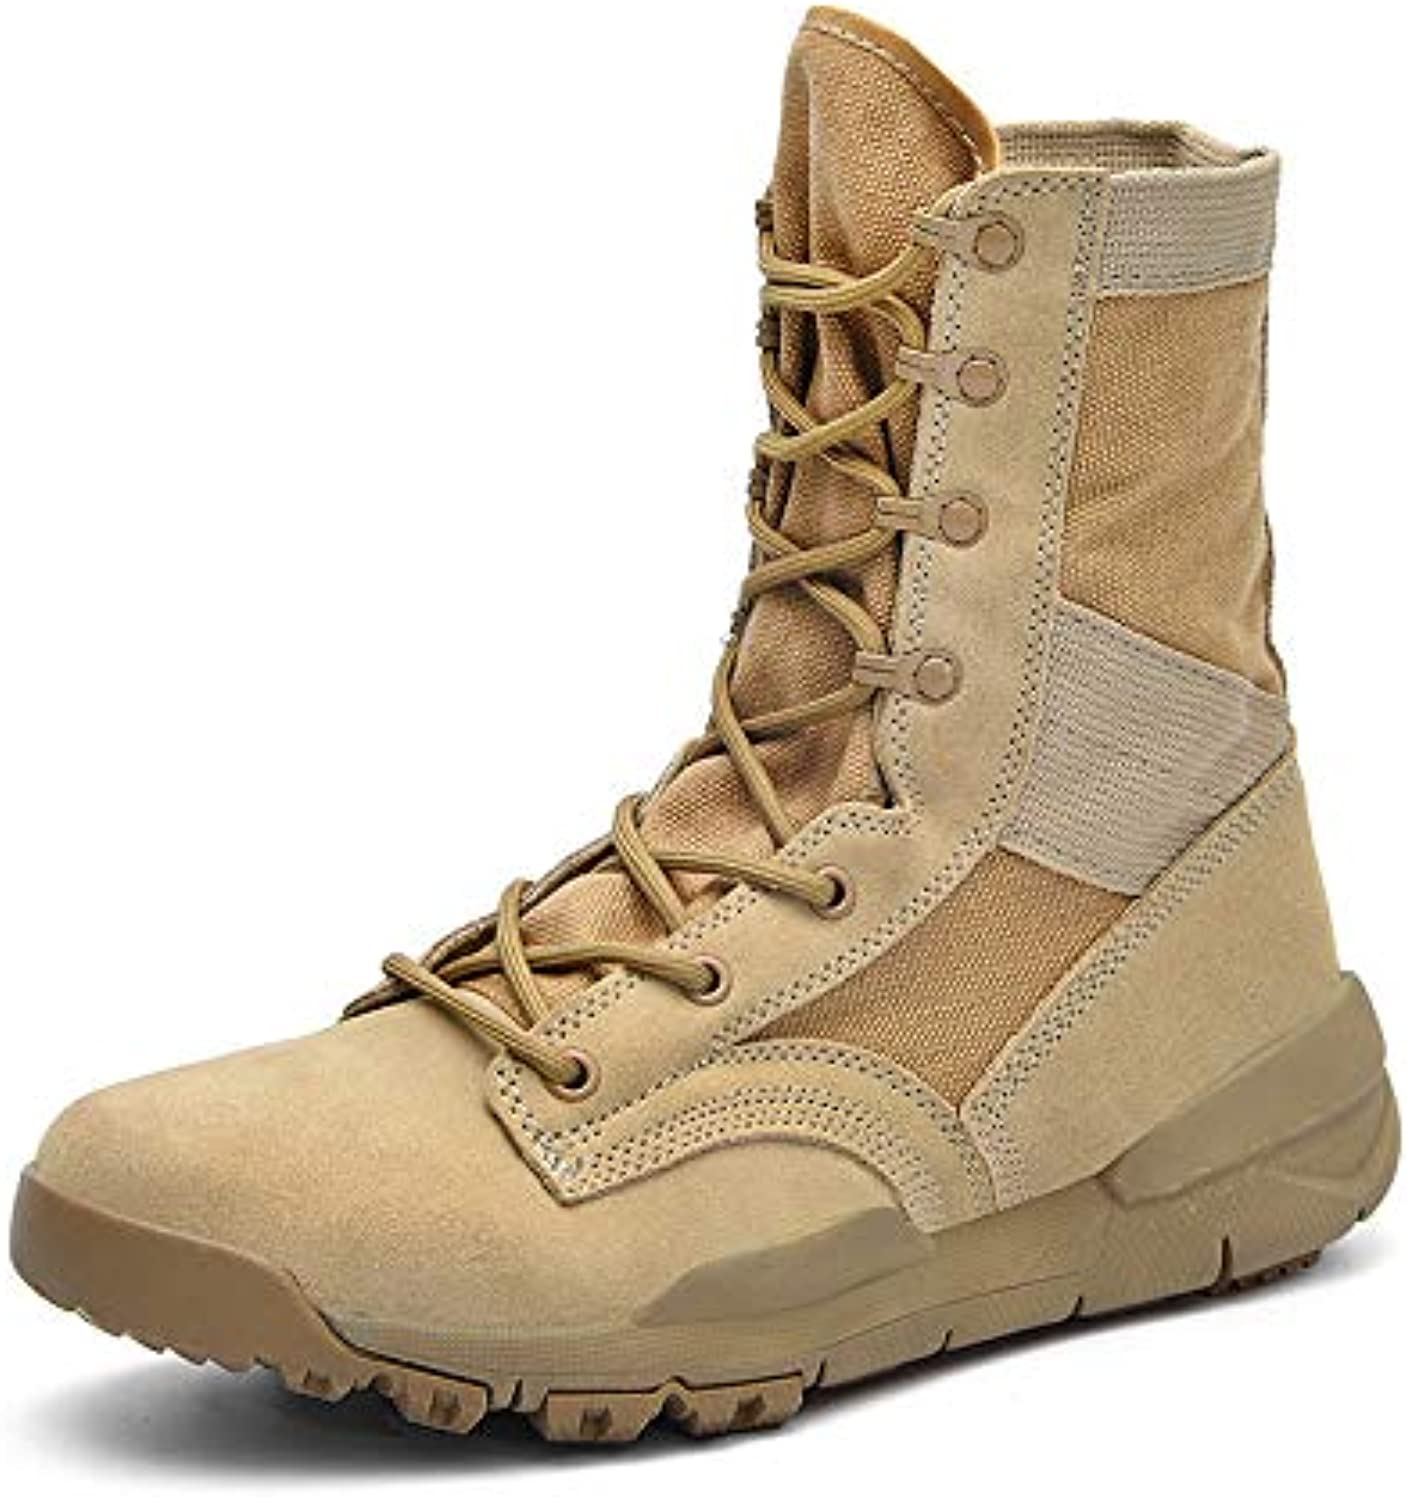 BNMZXNN Men's Outdoor Martin Boots Breathable Boots Desert Boots Hiking shoes, Hiking shoes and Trekking, 38-48,Khaki-47